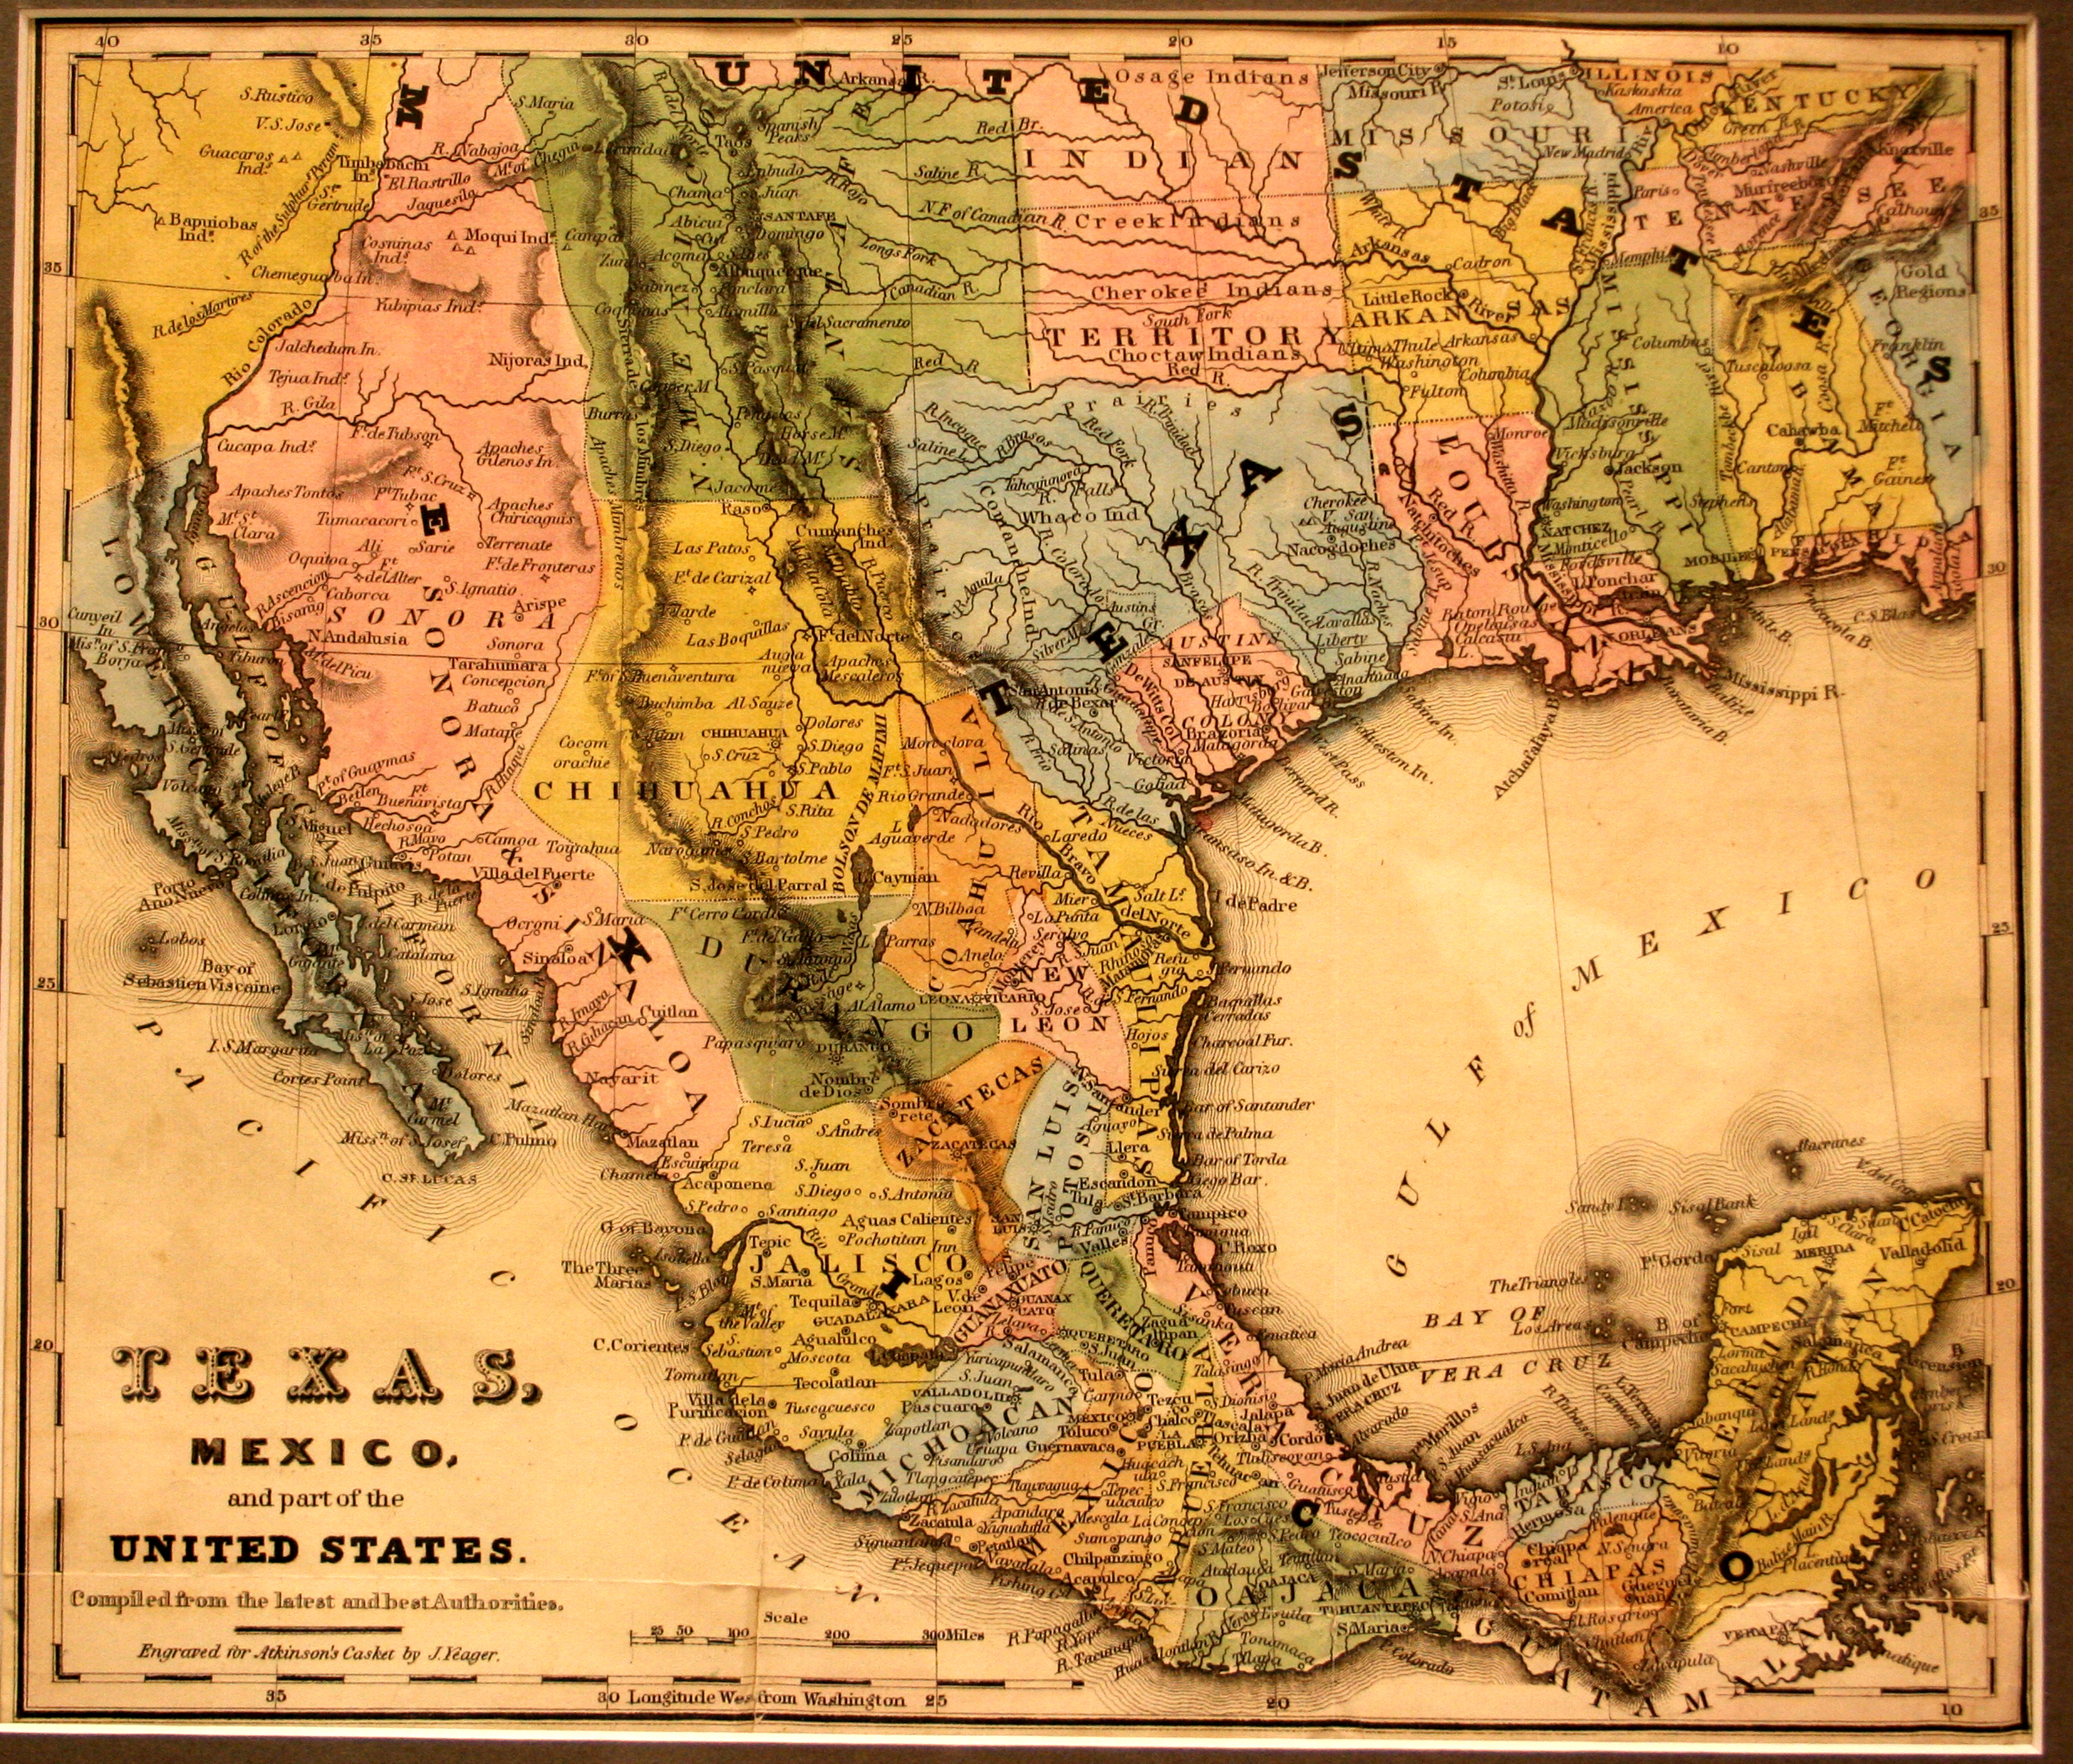 Map Of Texas Mexico.Texas Mexico And Part Of The United States Yana Marty Davis Map